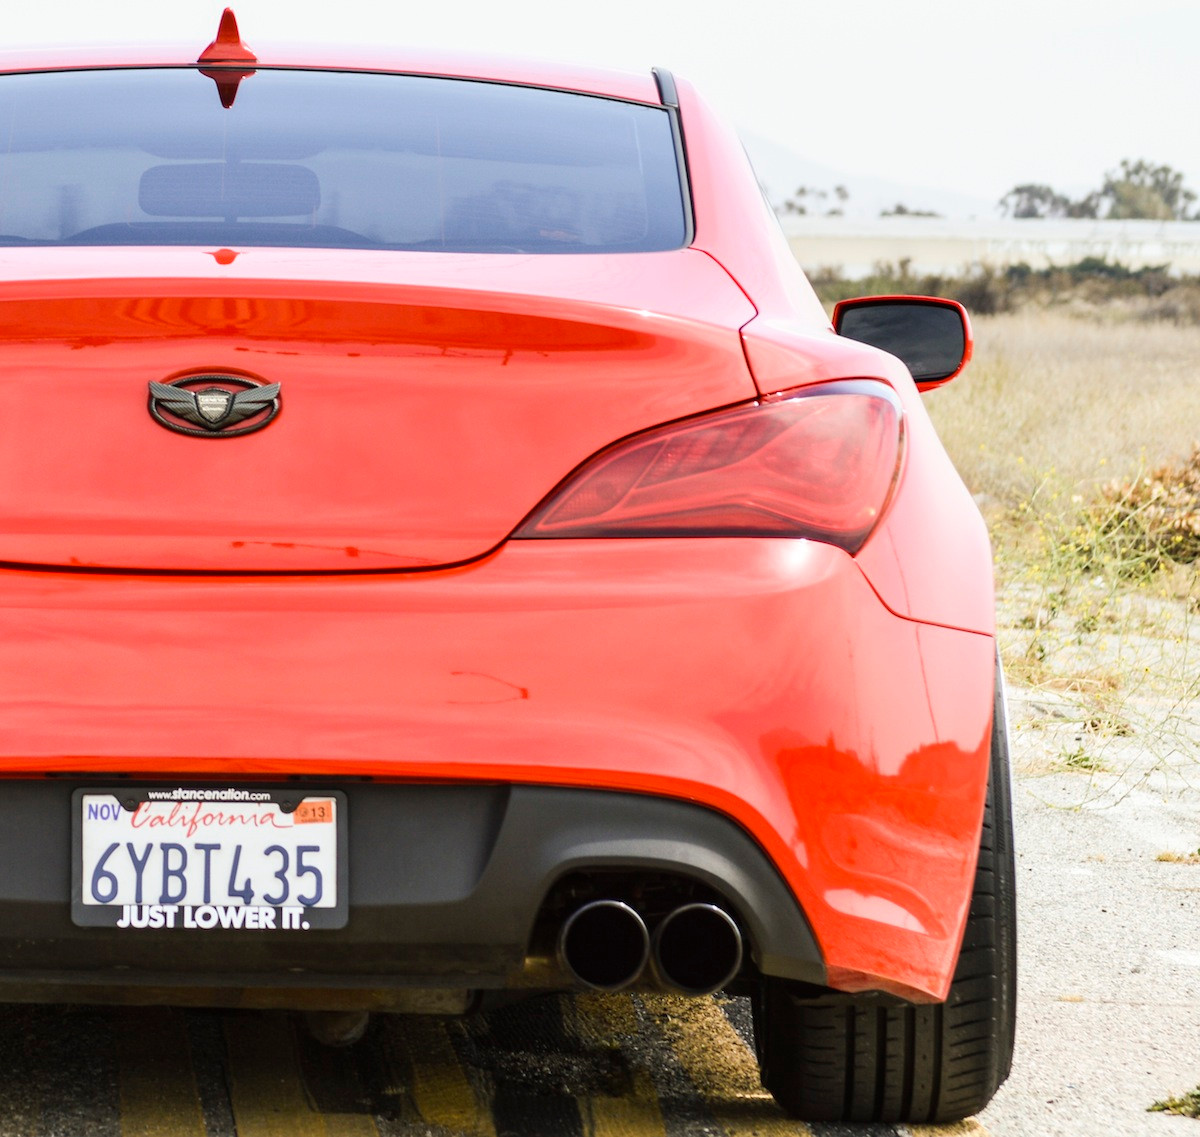 2013 + Hyundai Genesis Coupe Tail Light Overlays (Full Red